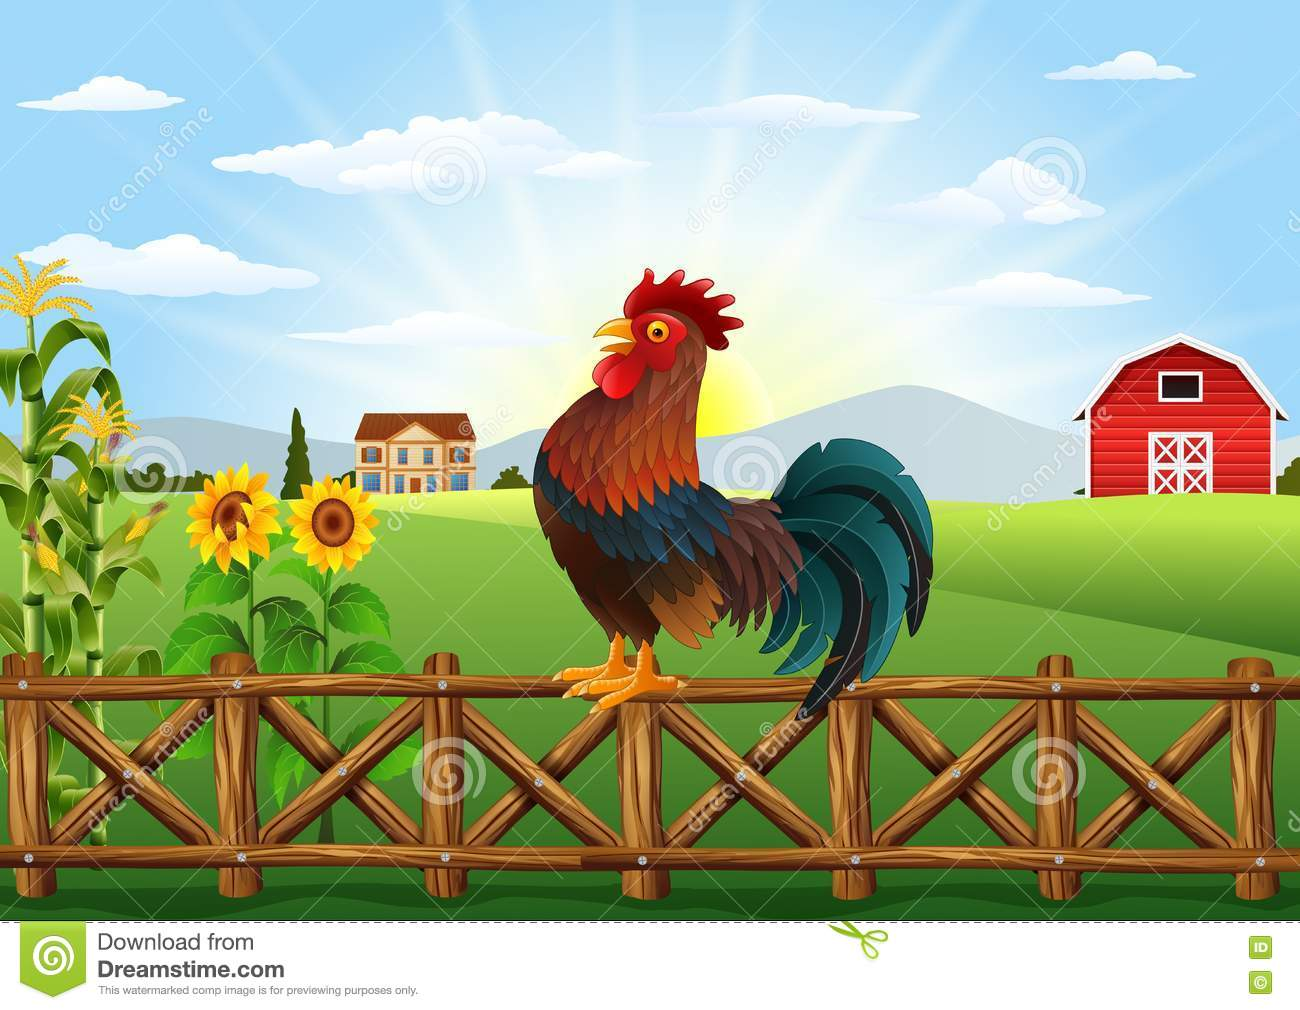 Gallos Coloridos Dibujos Animados: Cute Cartoon Rooster Standing In The Farm Fence Stock